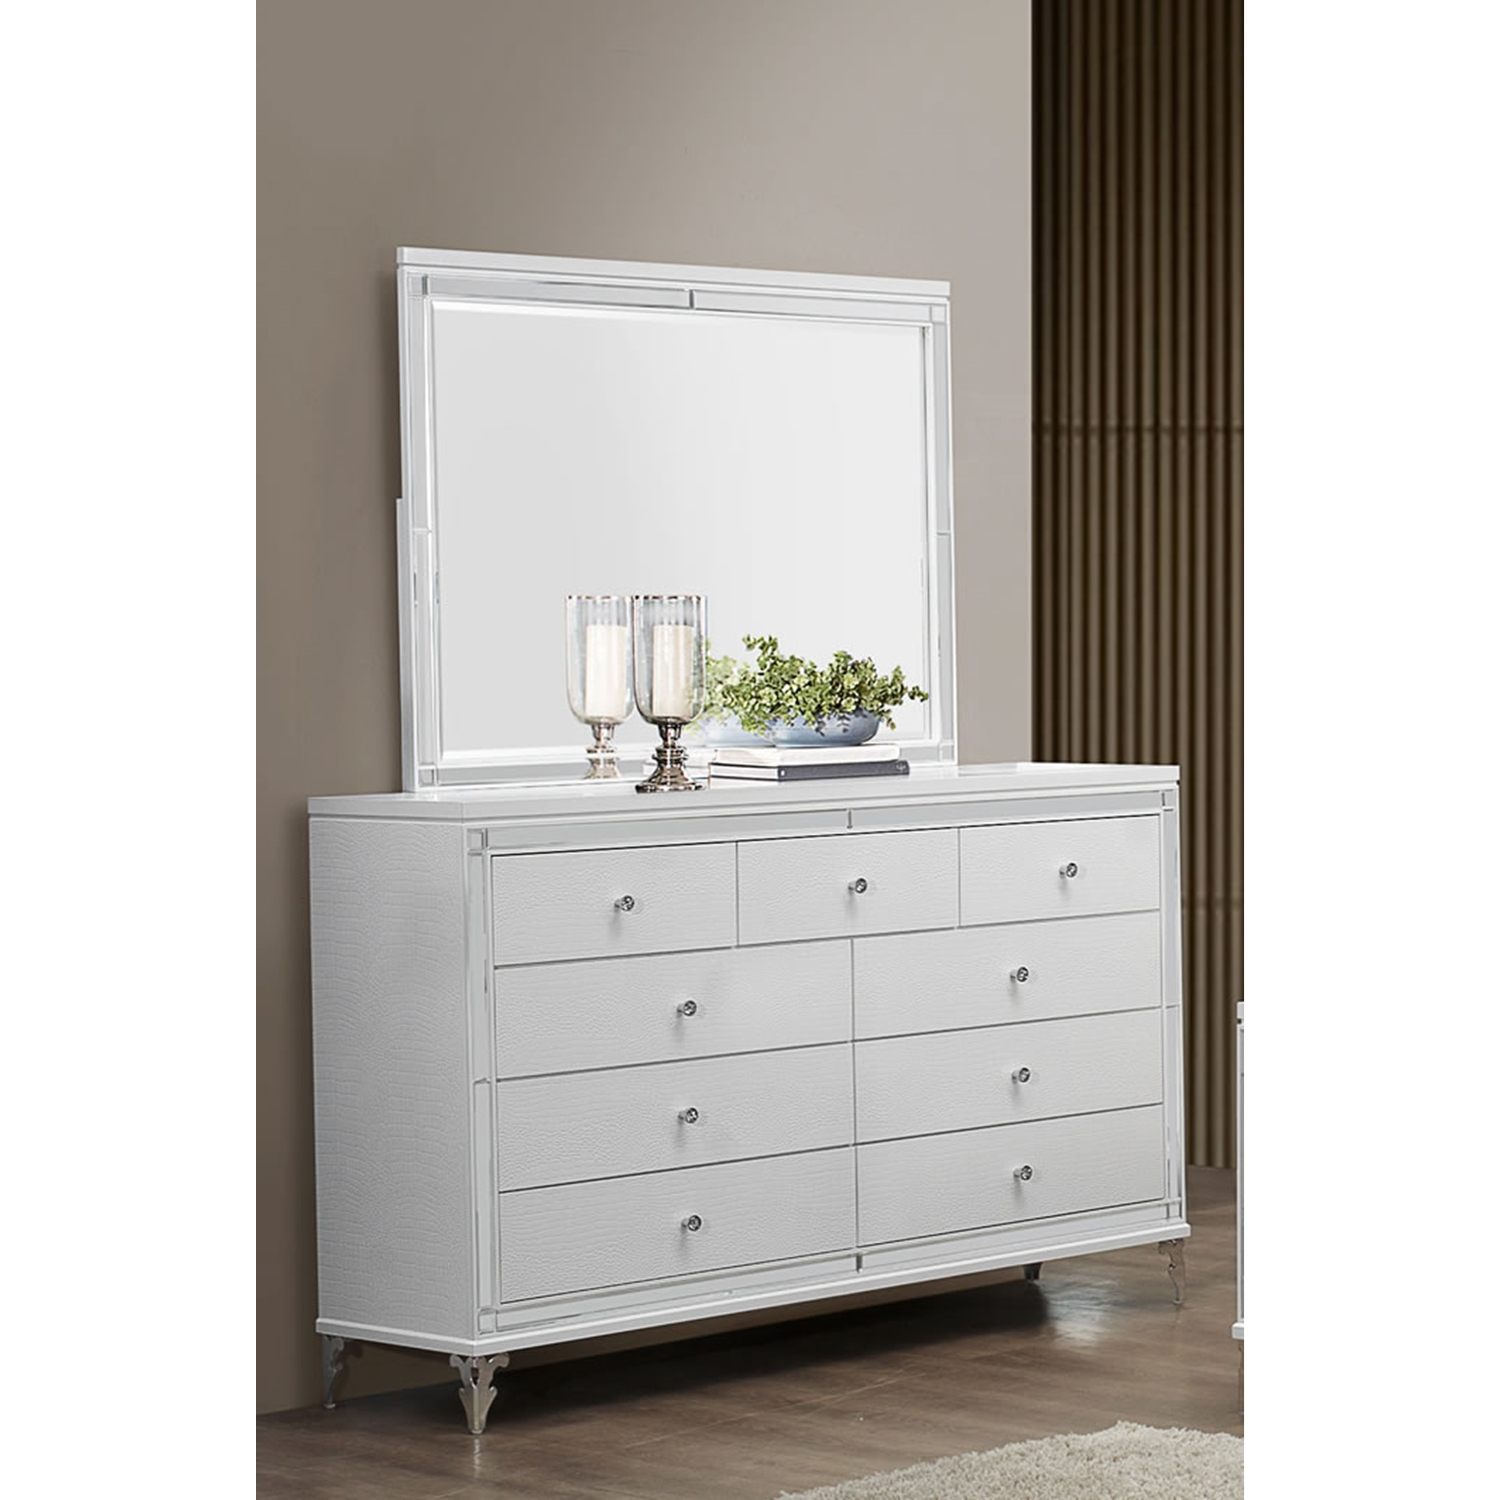 Catalina Dresser, Metallic White